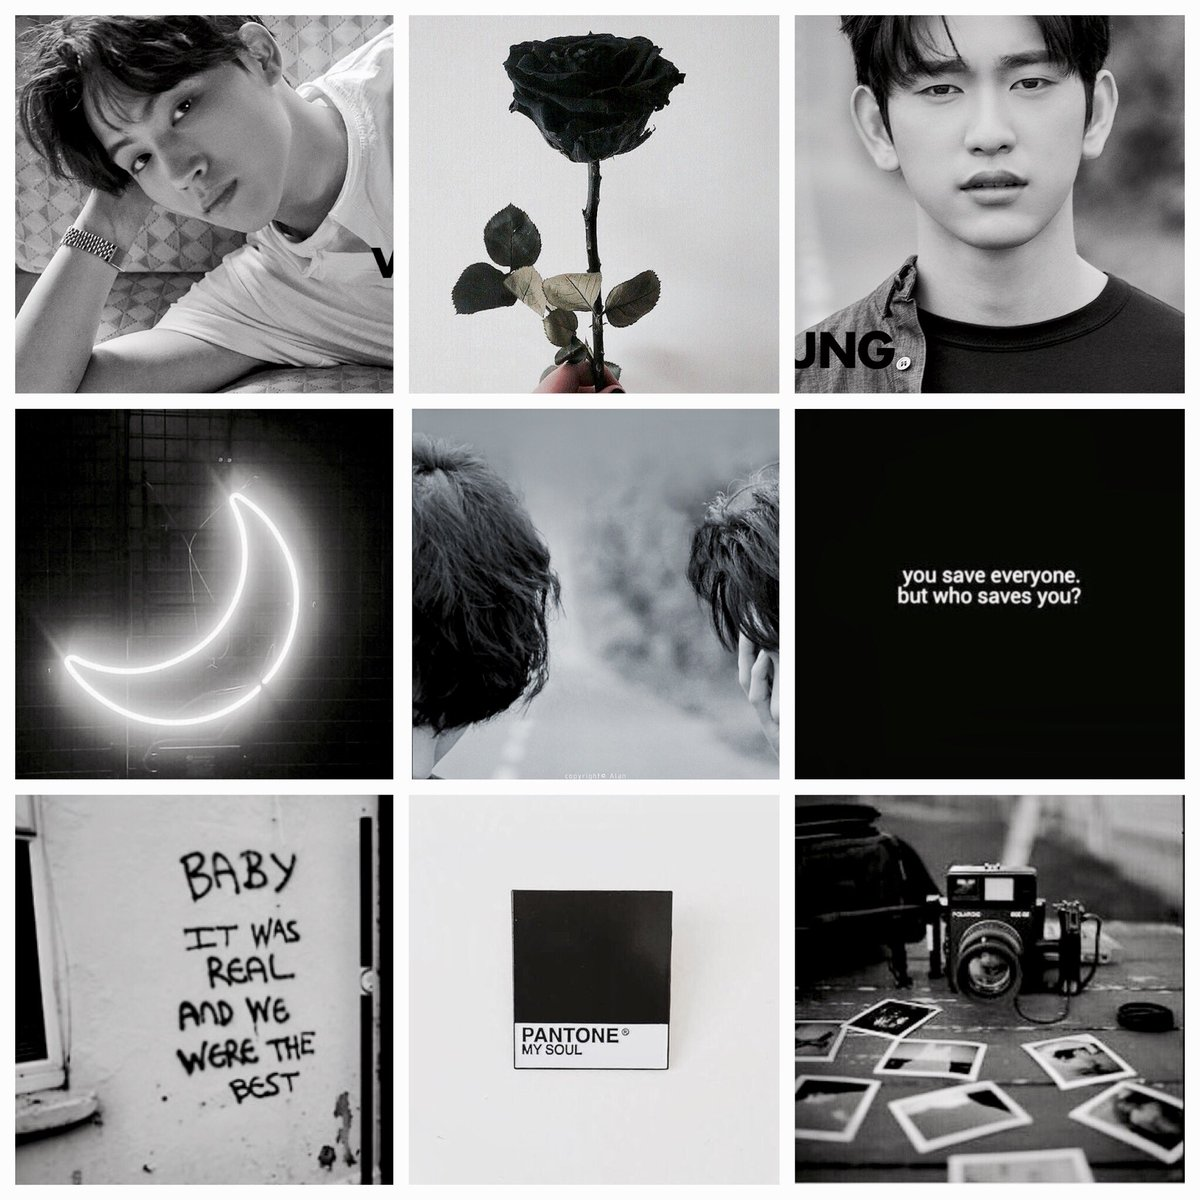 &quot;you save everyone, but who saves you?&quot;   #jjp #jjproject #jjp_verse2 #moodboard #xx_x_xx<br>http://pic.twitter.com/2K7p5JR2Ge